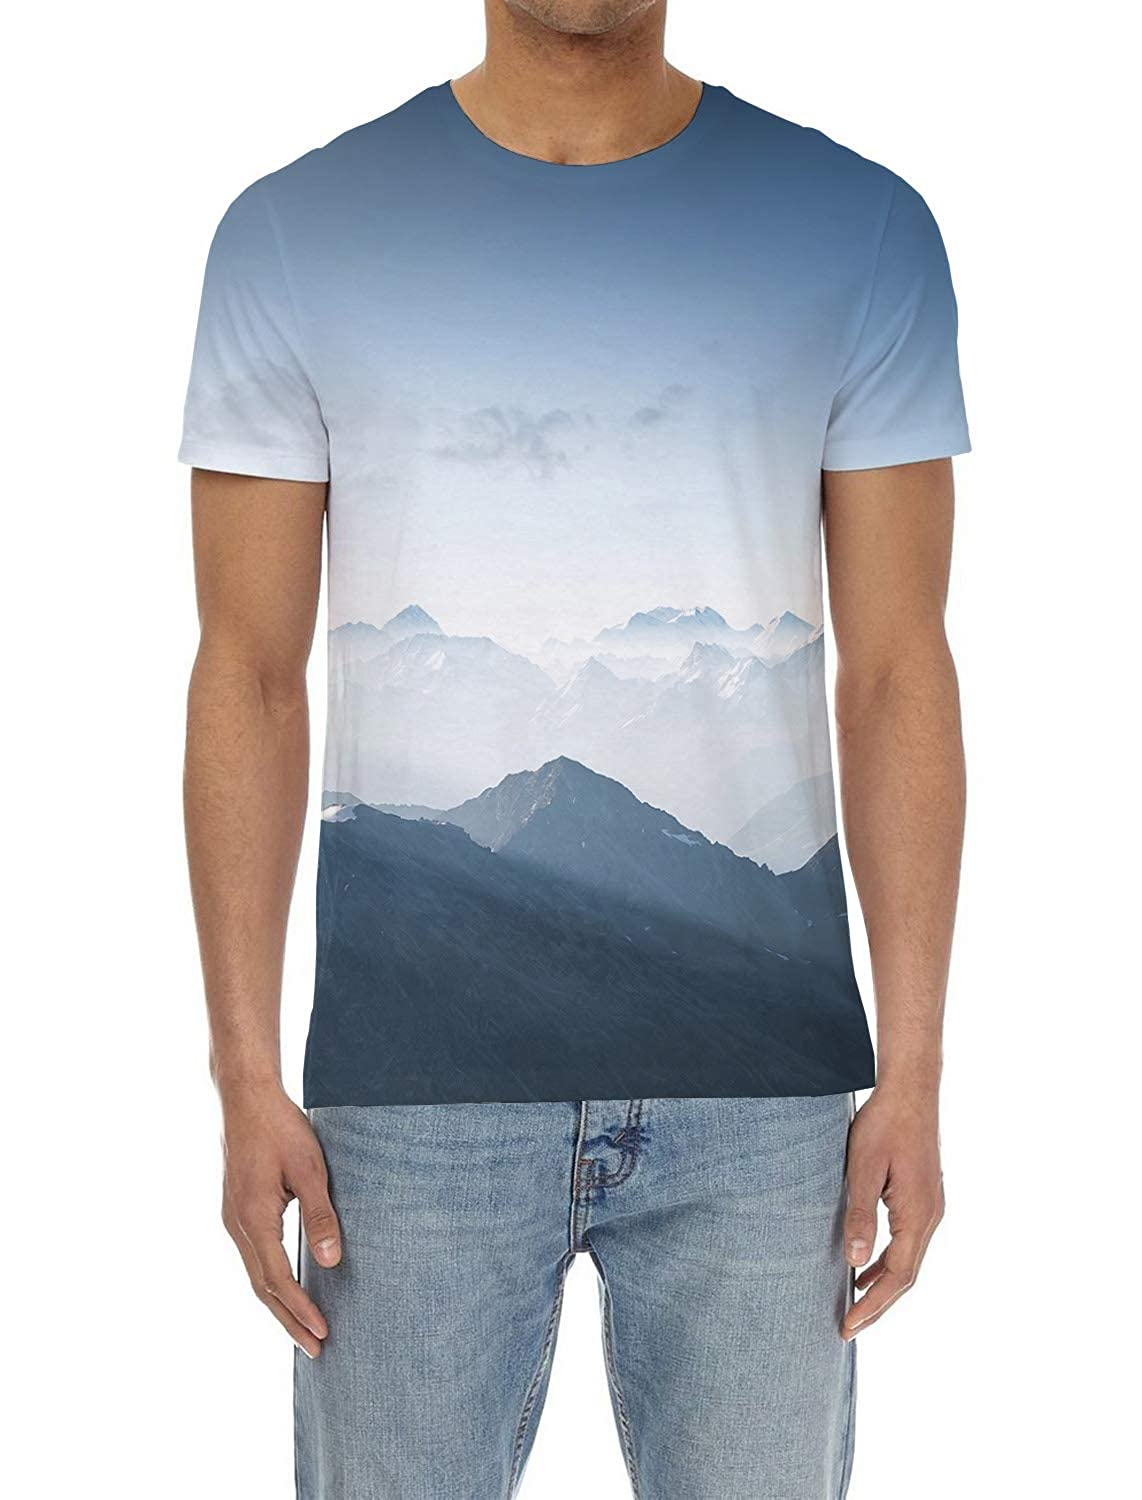 EZON-CH Mens Short-Sleeve Crewneck T-Shirt,Assorted Fashion 3D Printing Male Blouse Tee Tops,Mountains and Cloud for Youth,